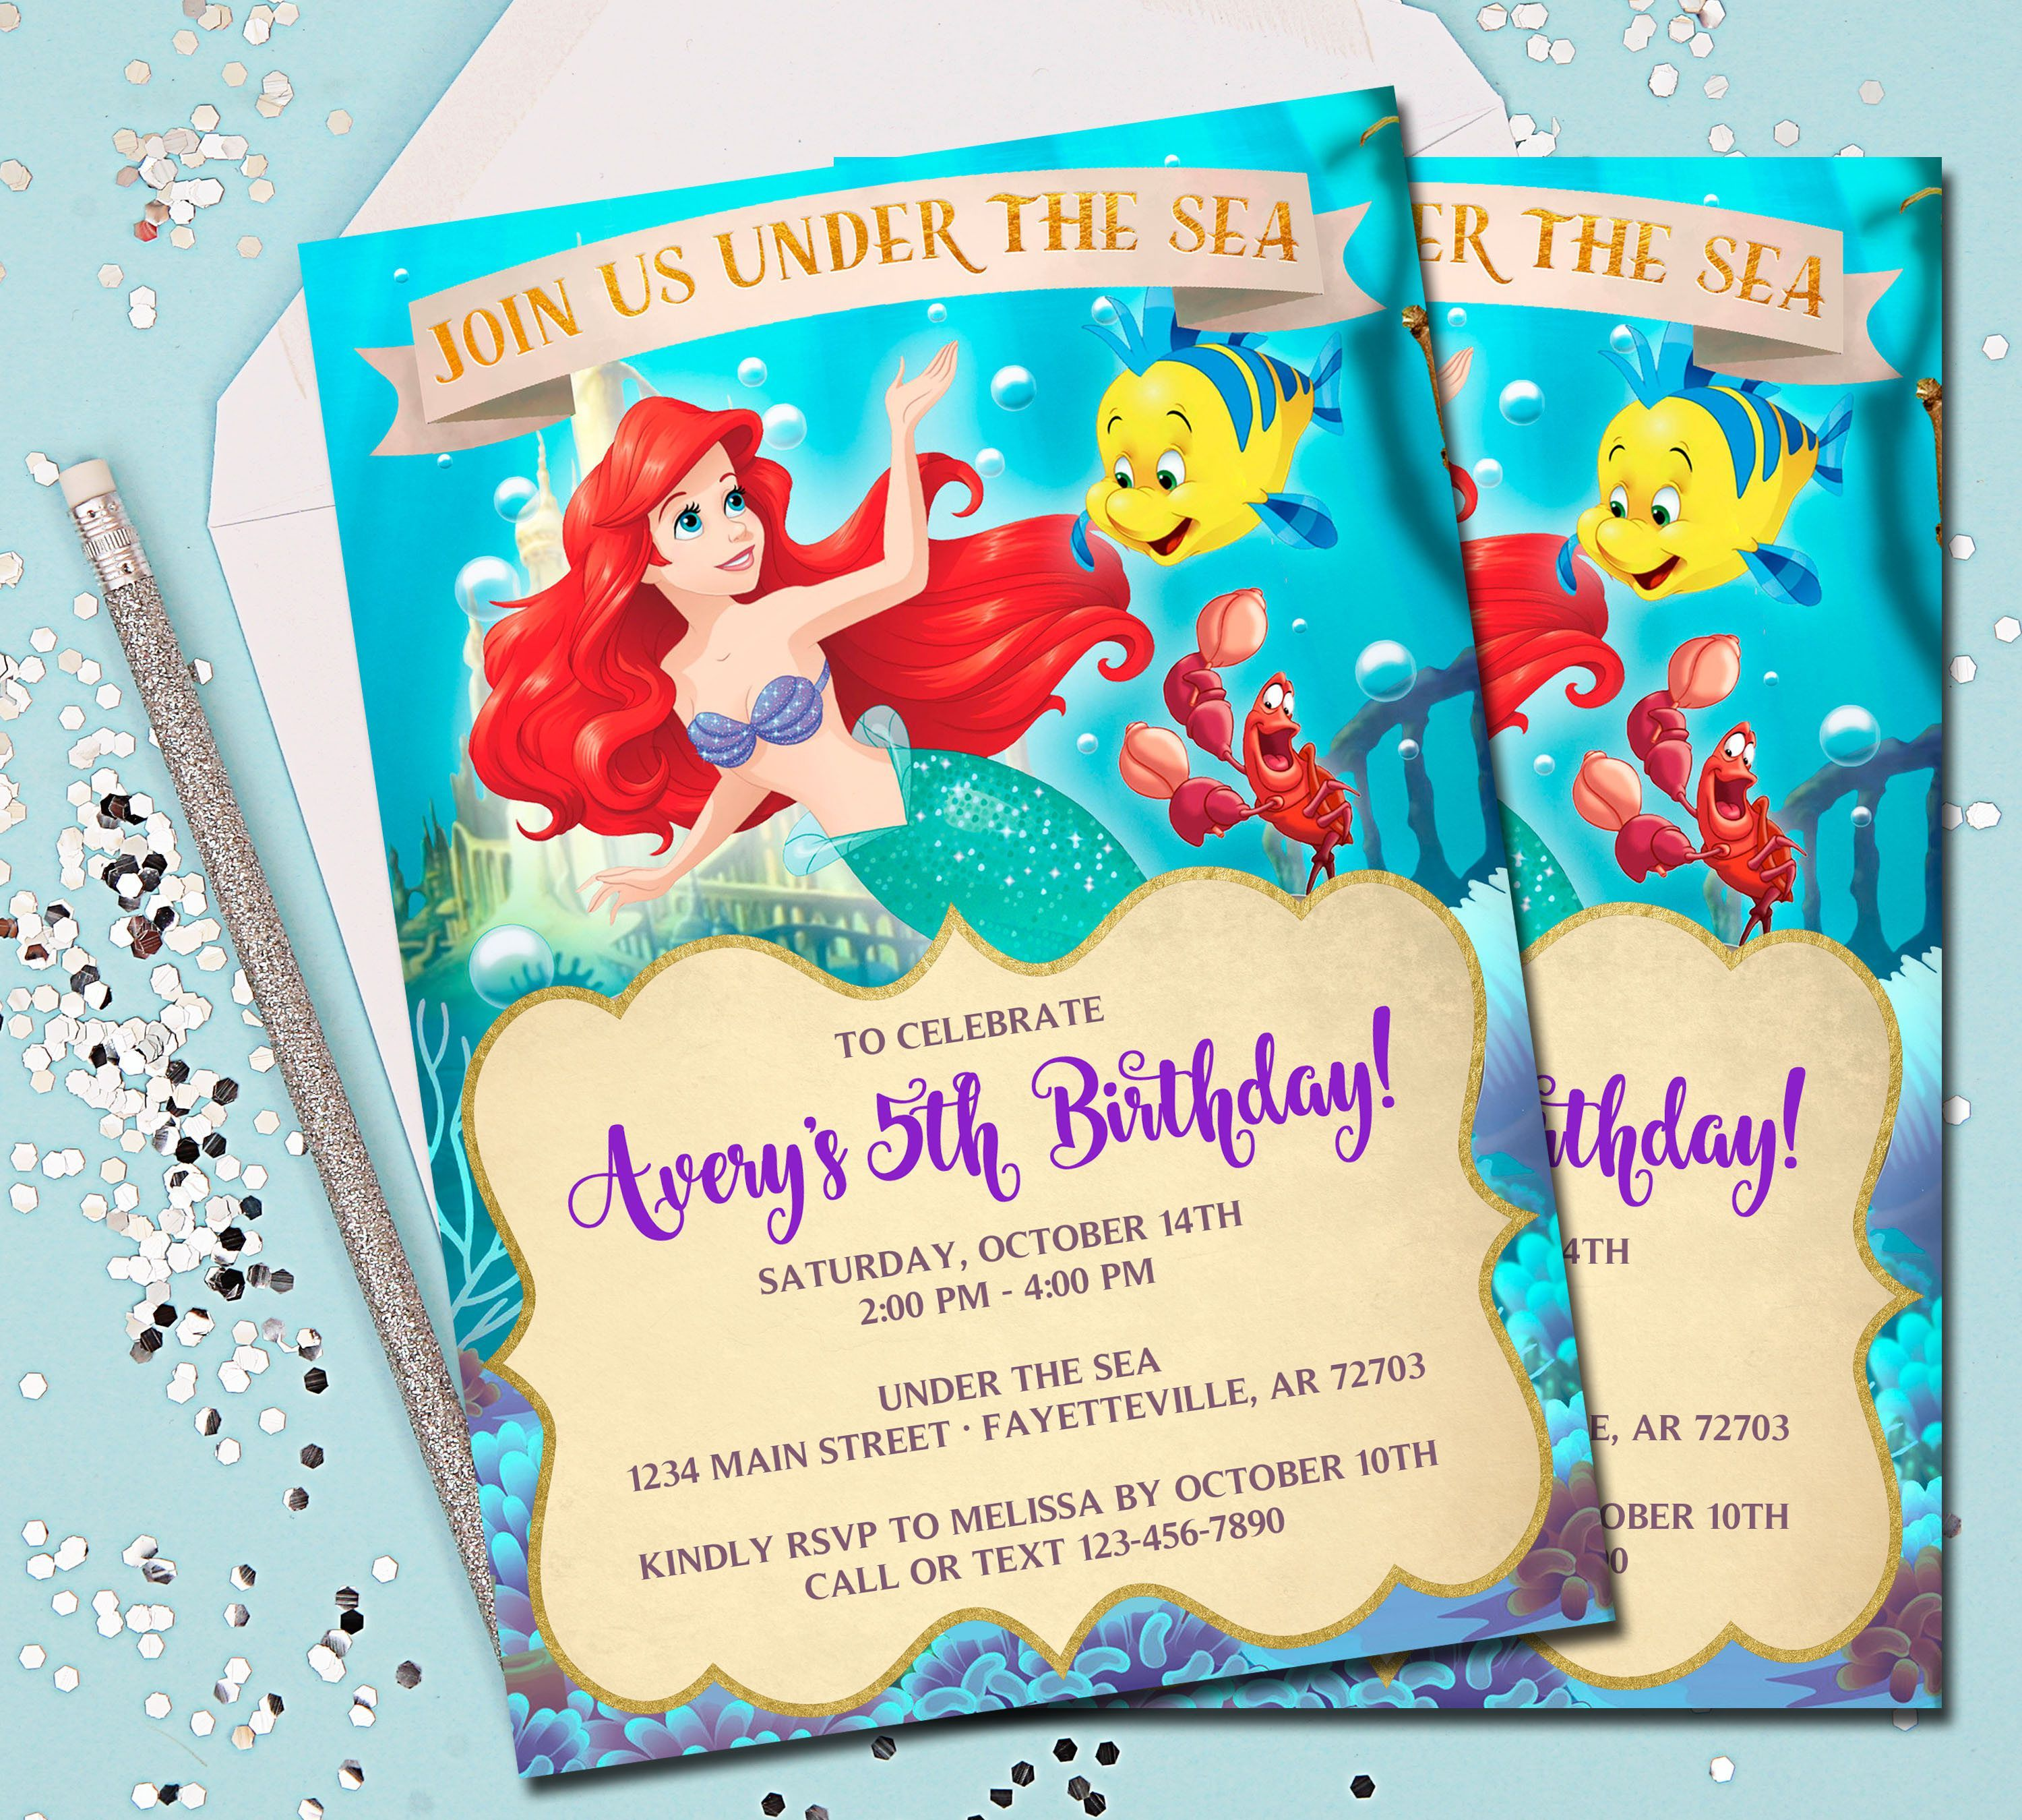 Little Mermaid Birthday Invitations With Picture | Party Invitations ...